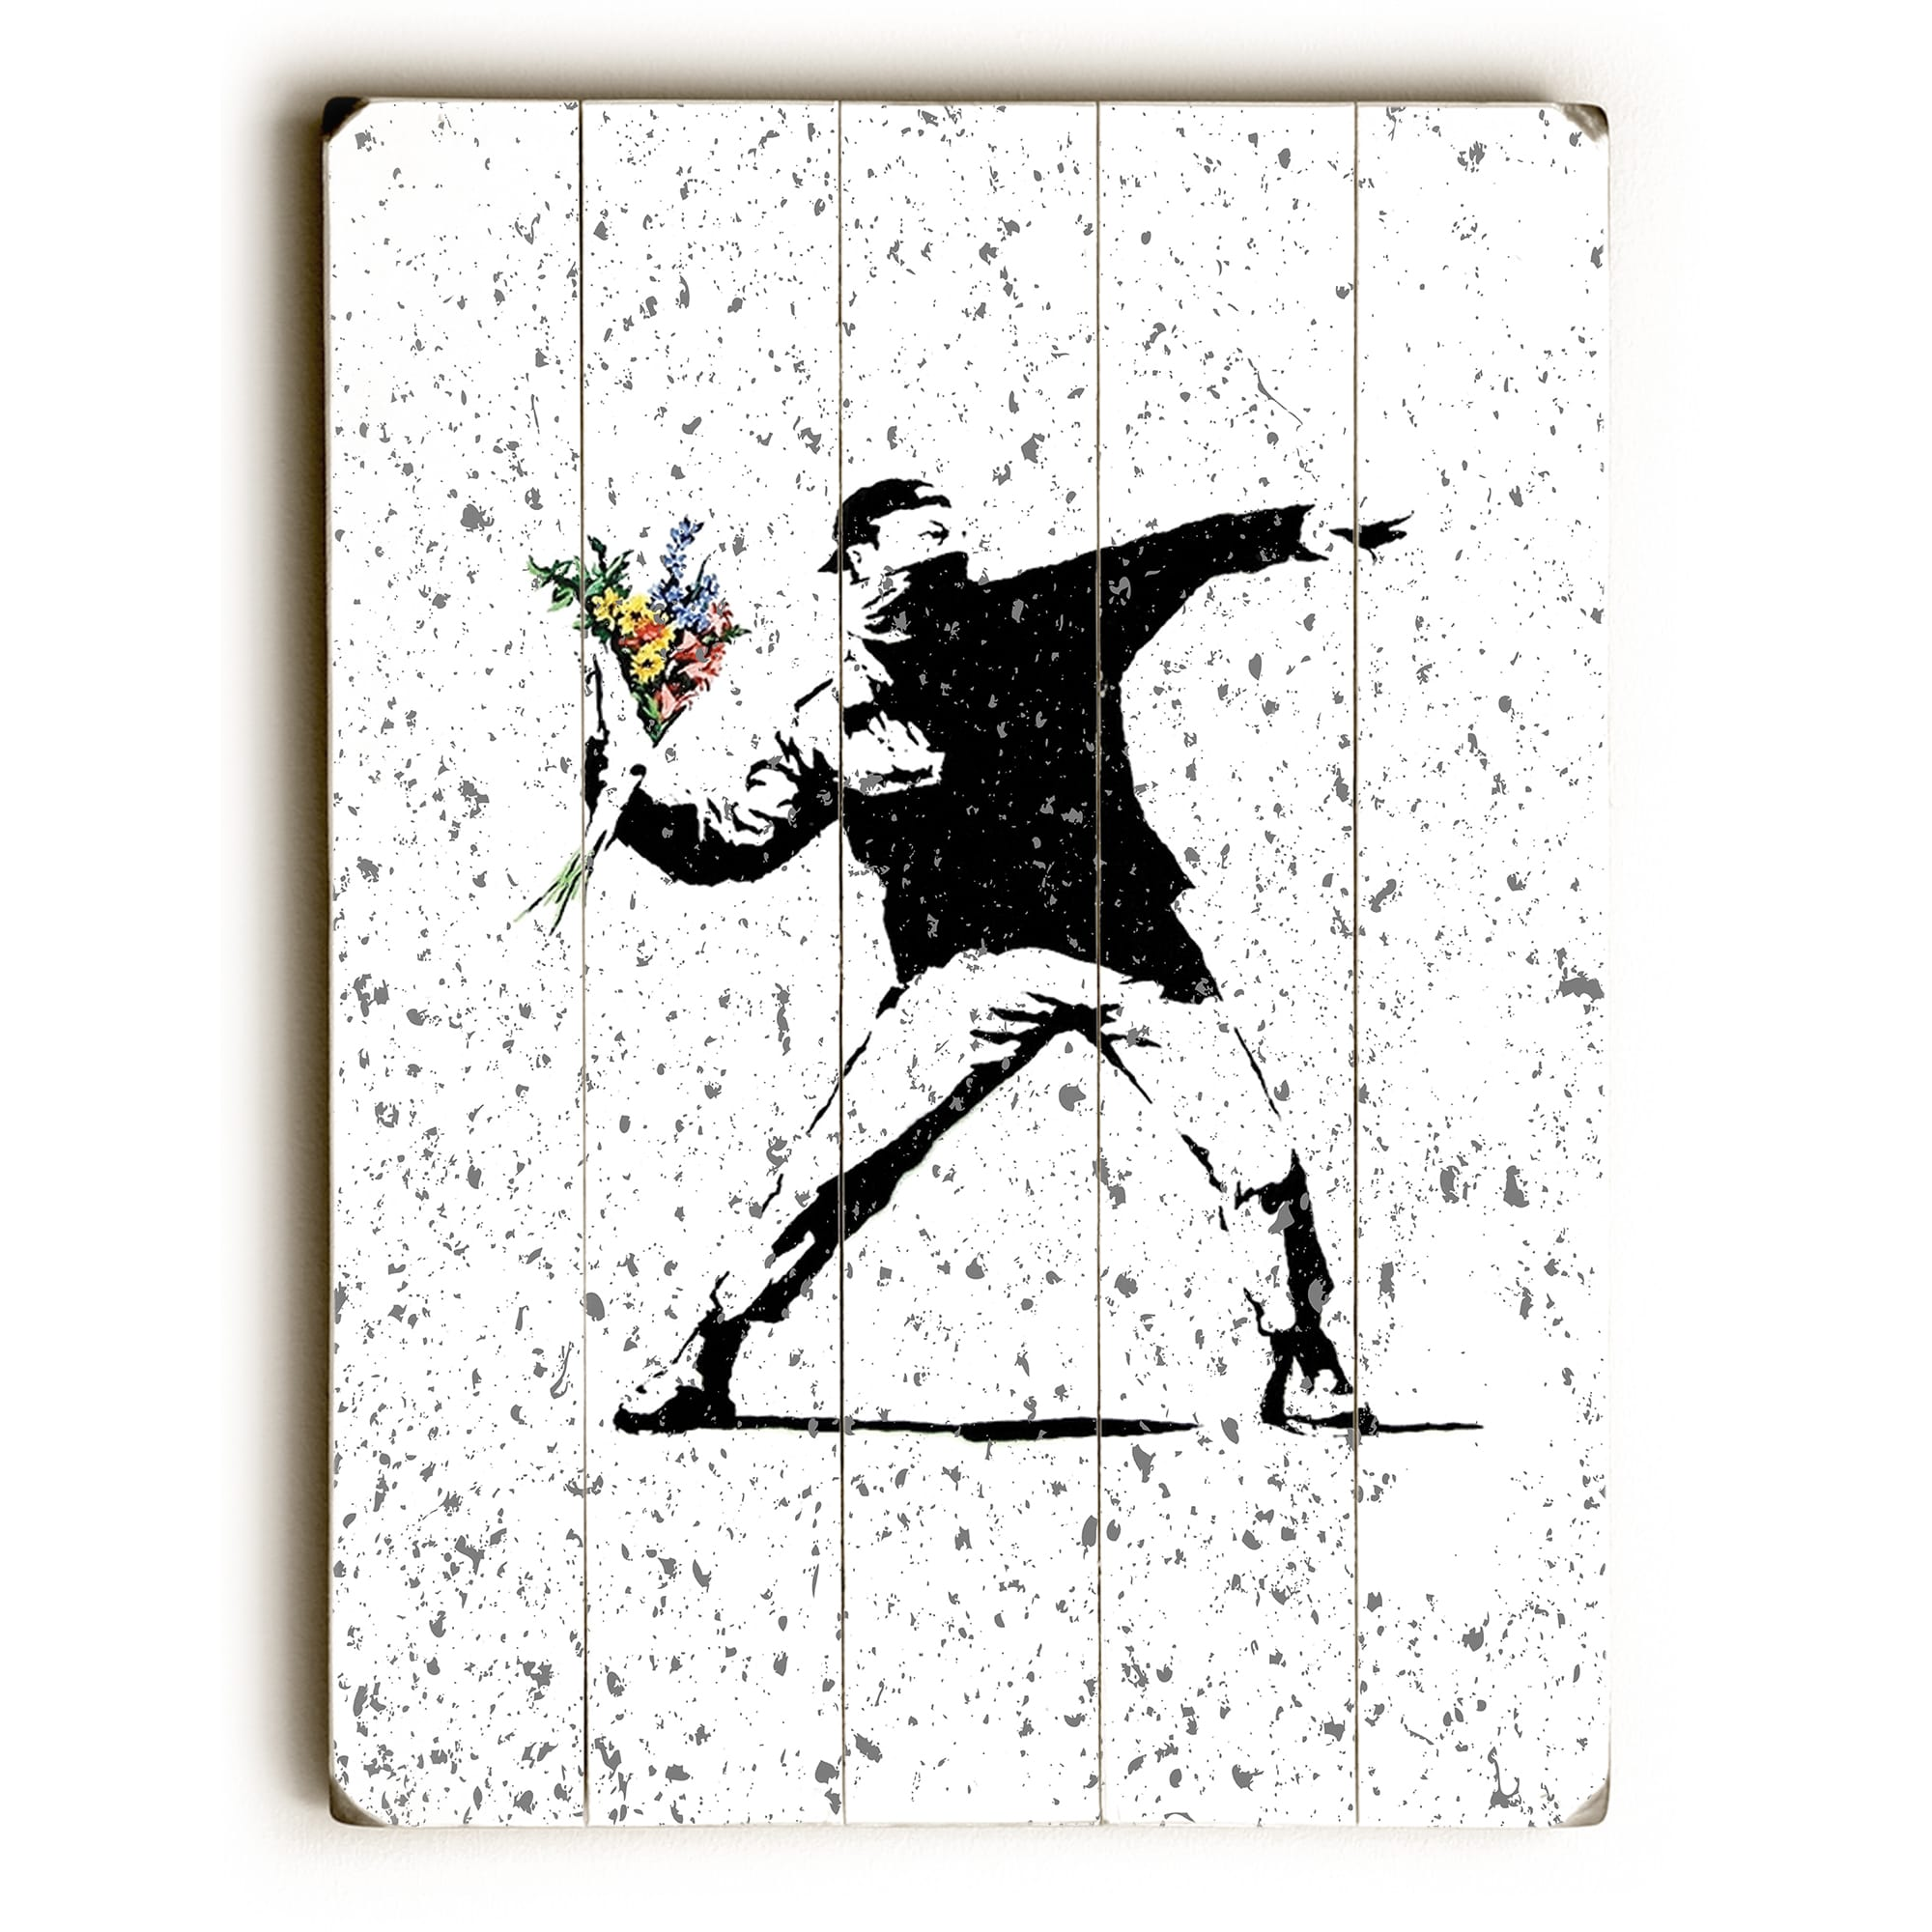 One Bella Casa 75357PW3040 30 x 40 in  Rage Flowers Textured Planked Wood  Wall Decor by Banksy, White